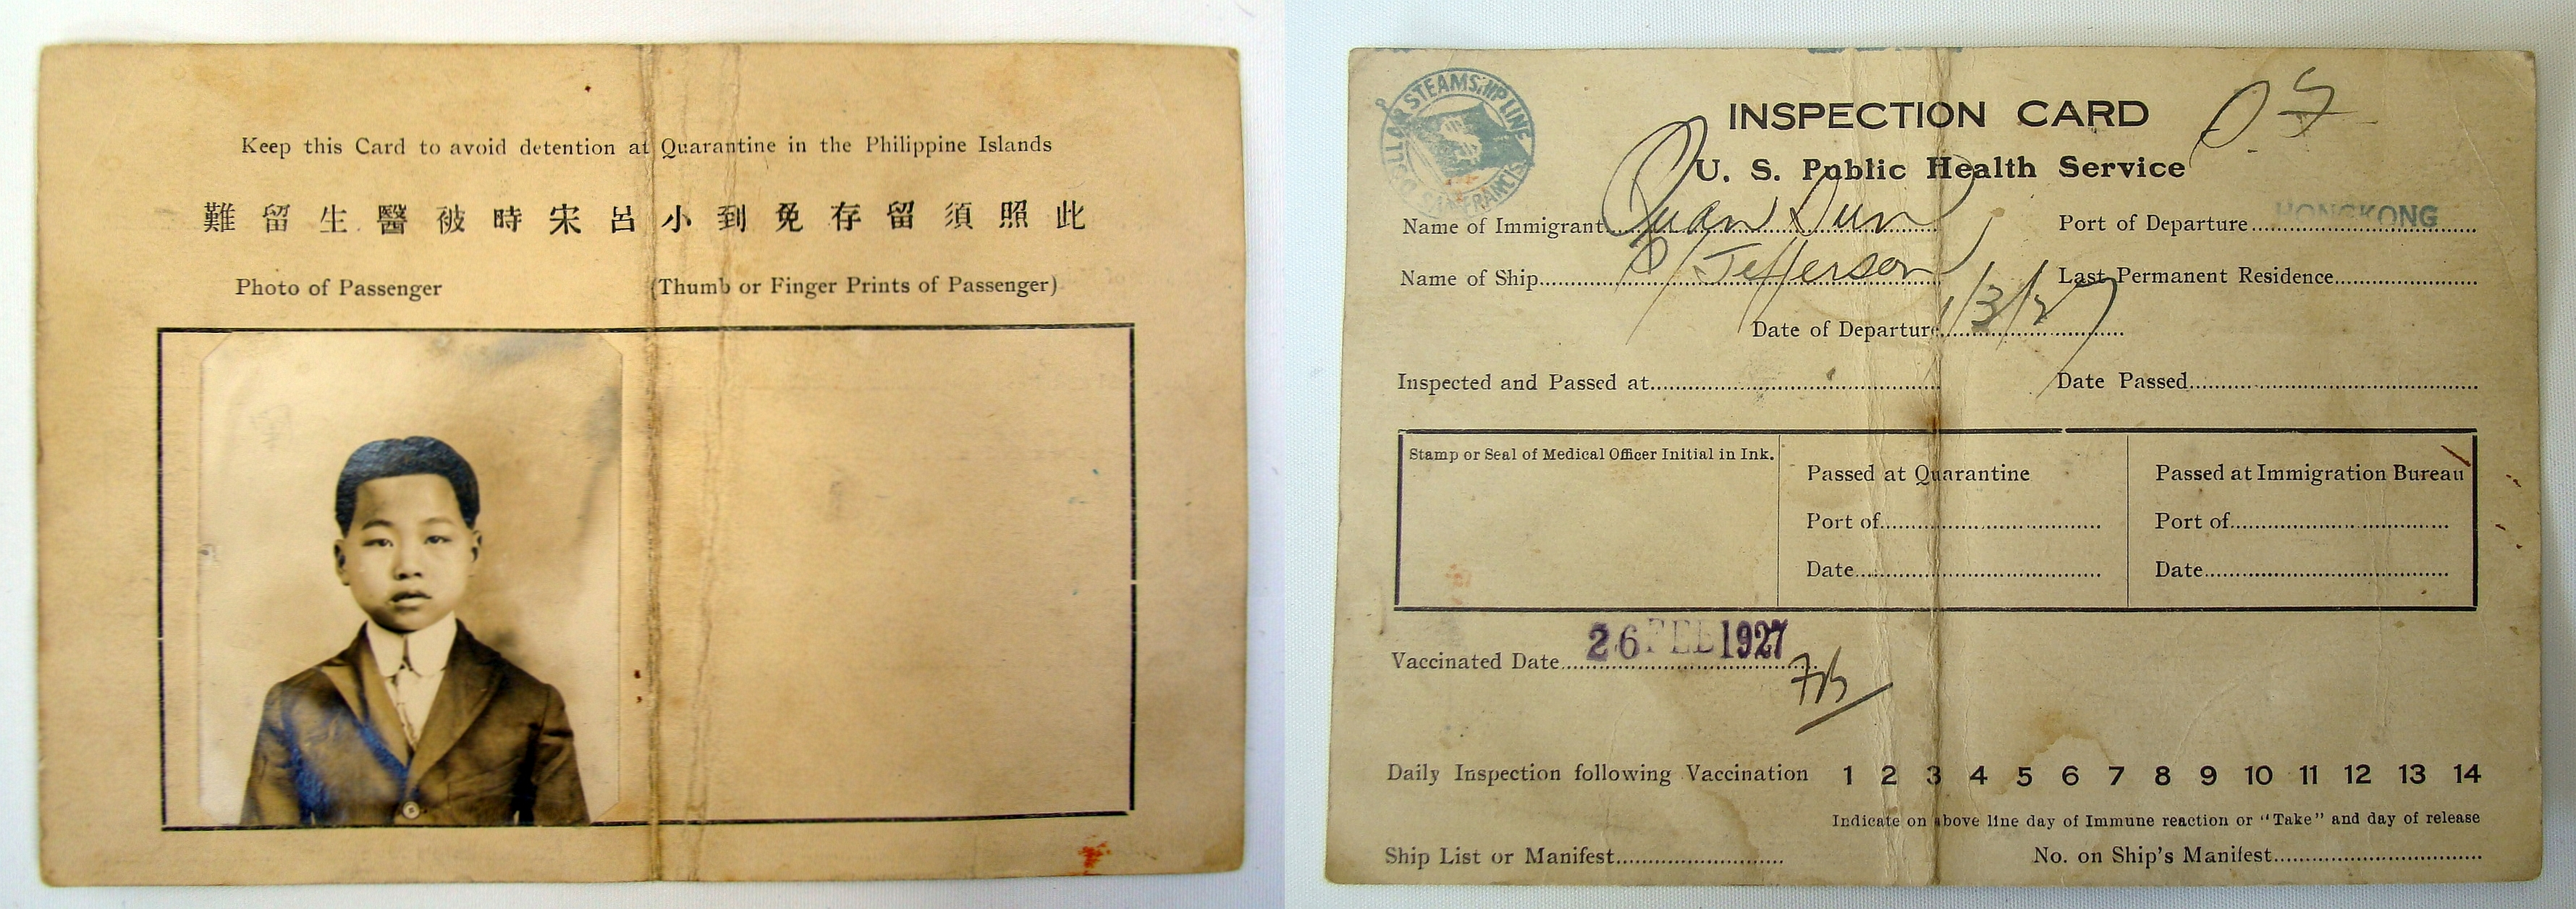 U.S. Public Health Service Immigration Inspection Card for Quan Sun of Hong Kong